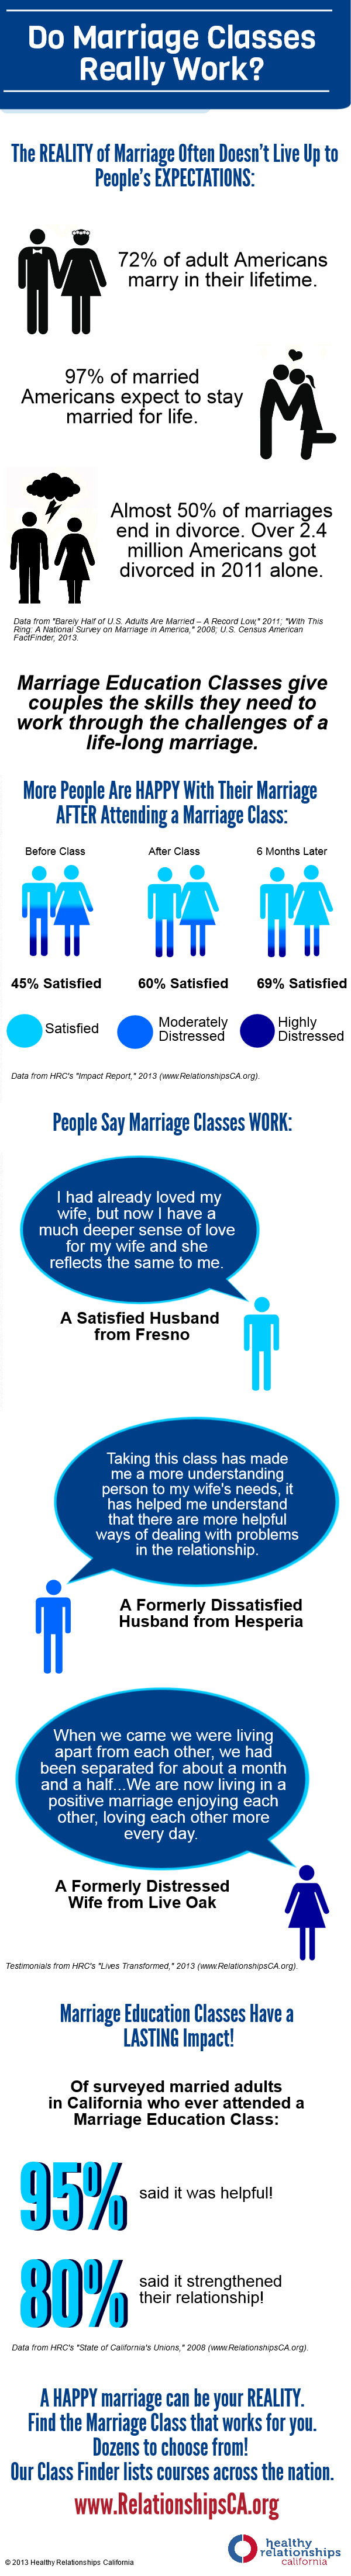 Do-Marriage-Classes-Really-Work_-blog-version.jpg